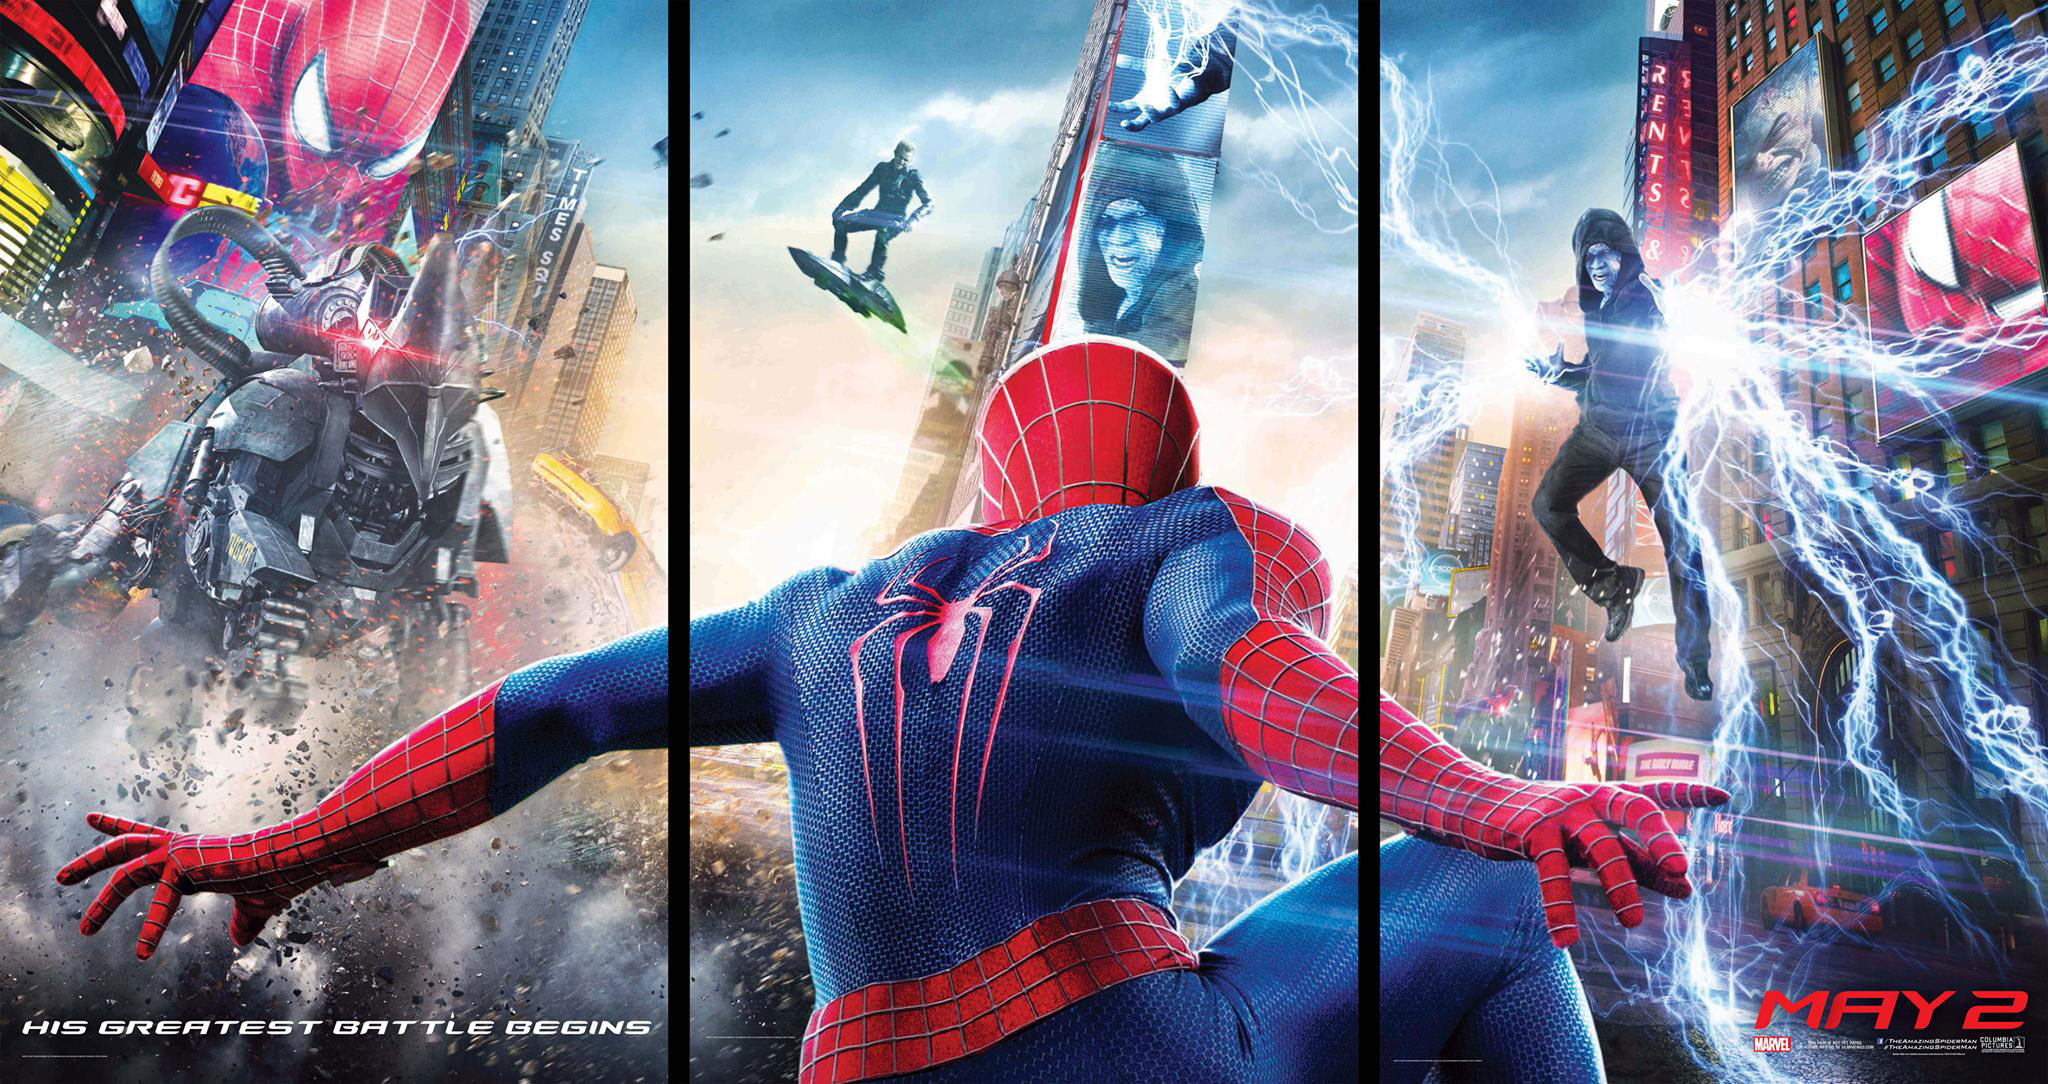 The Amazing Spider-Man 2-Official Poster Banner PROMO POSTER-04EDEZEMBRO2013-04-04